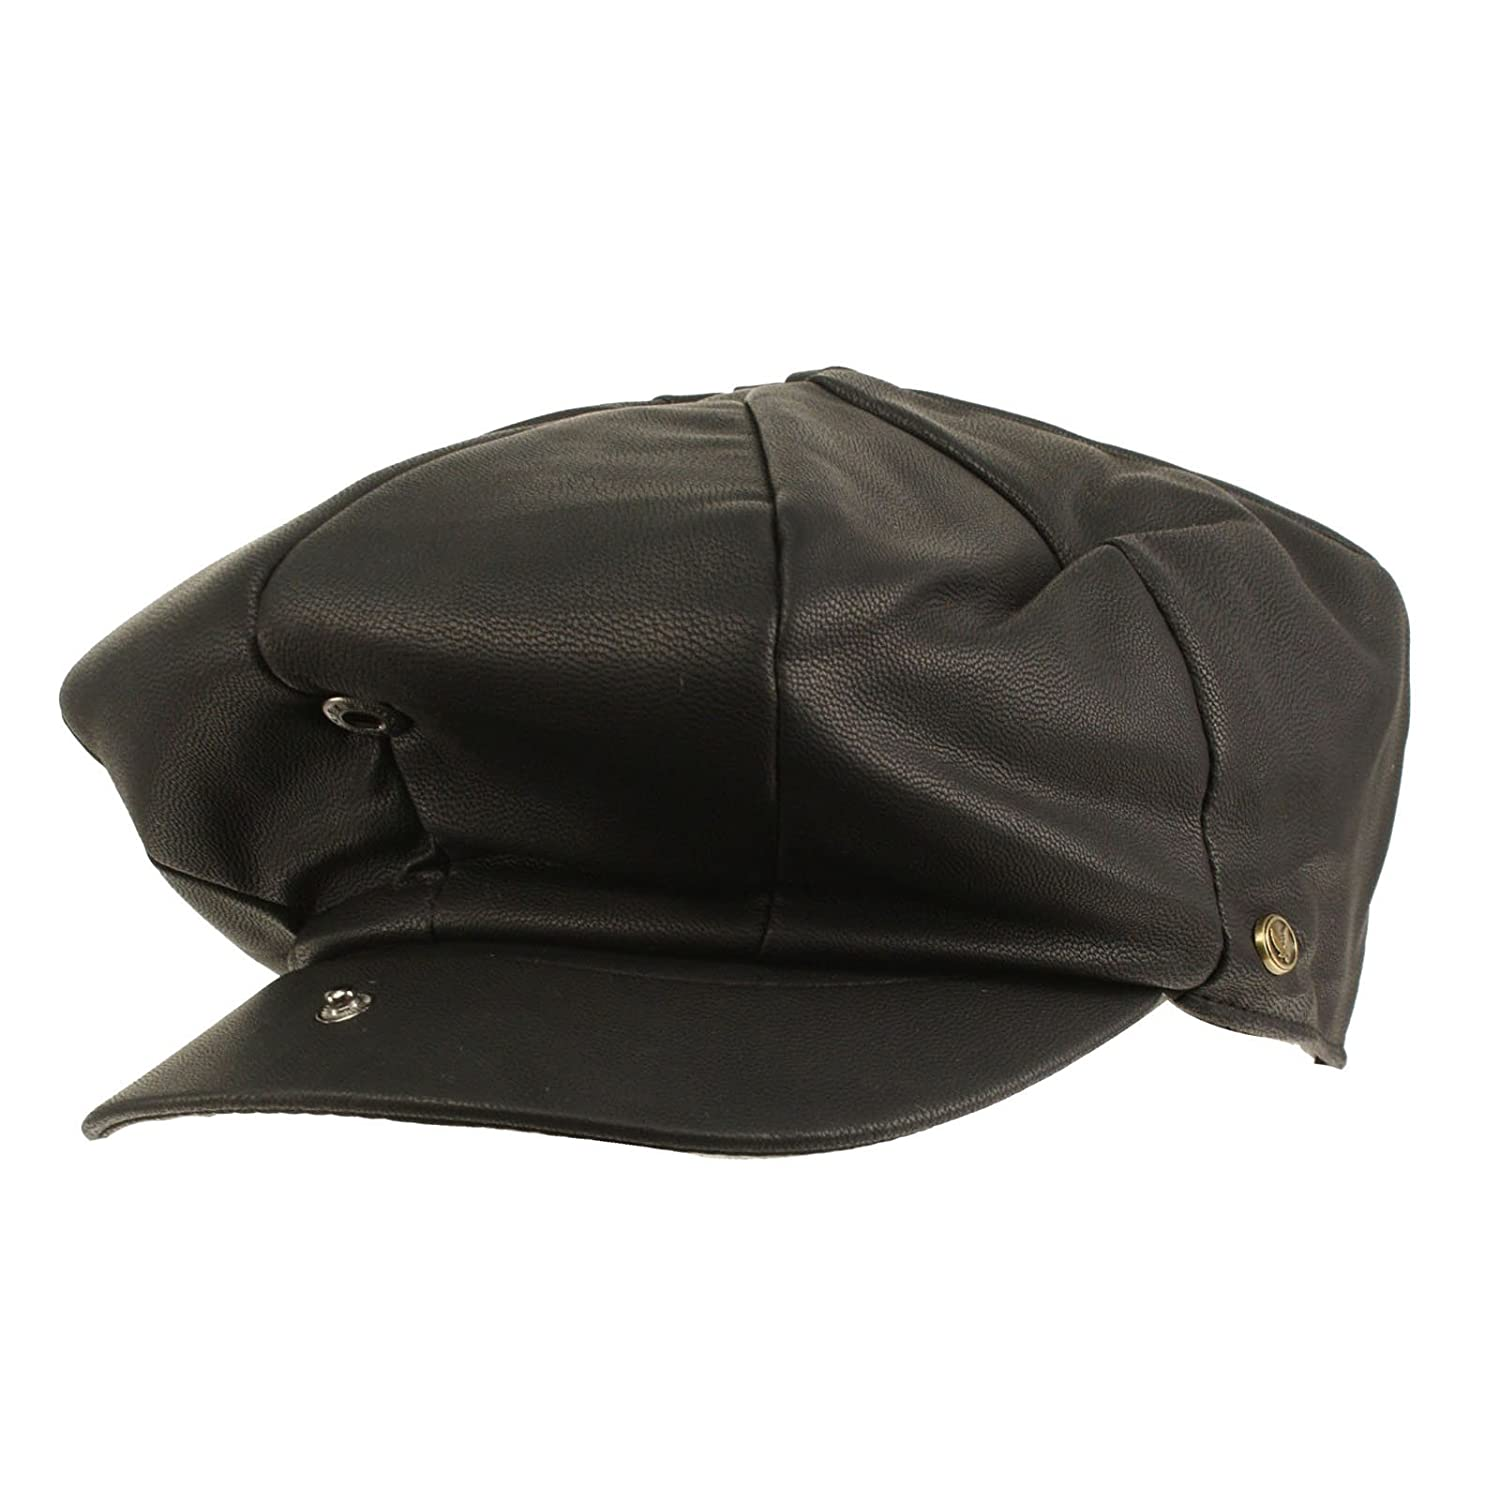 SK Hat shop Men s Oversized Faux Leather Classic newsboy Cabbie Gatsby Cap  Hat Black at Amazon Men s Clothing store  f48c10fa525